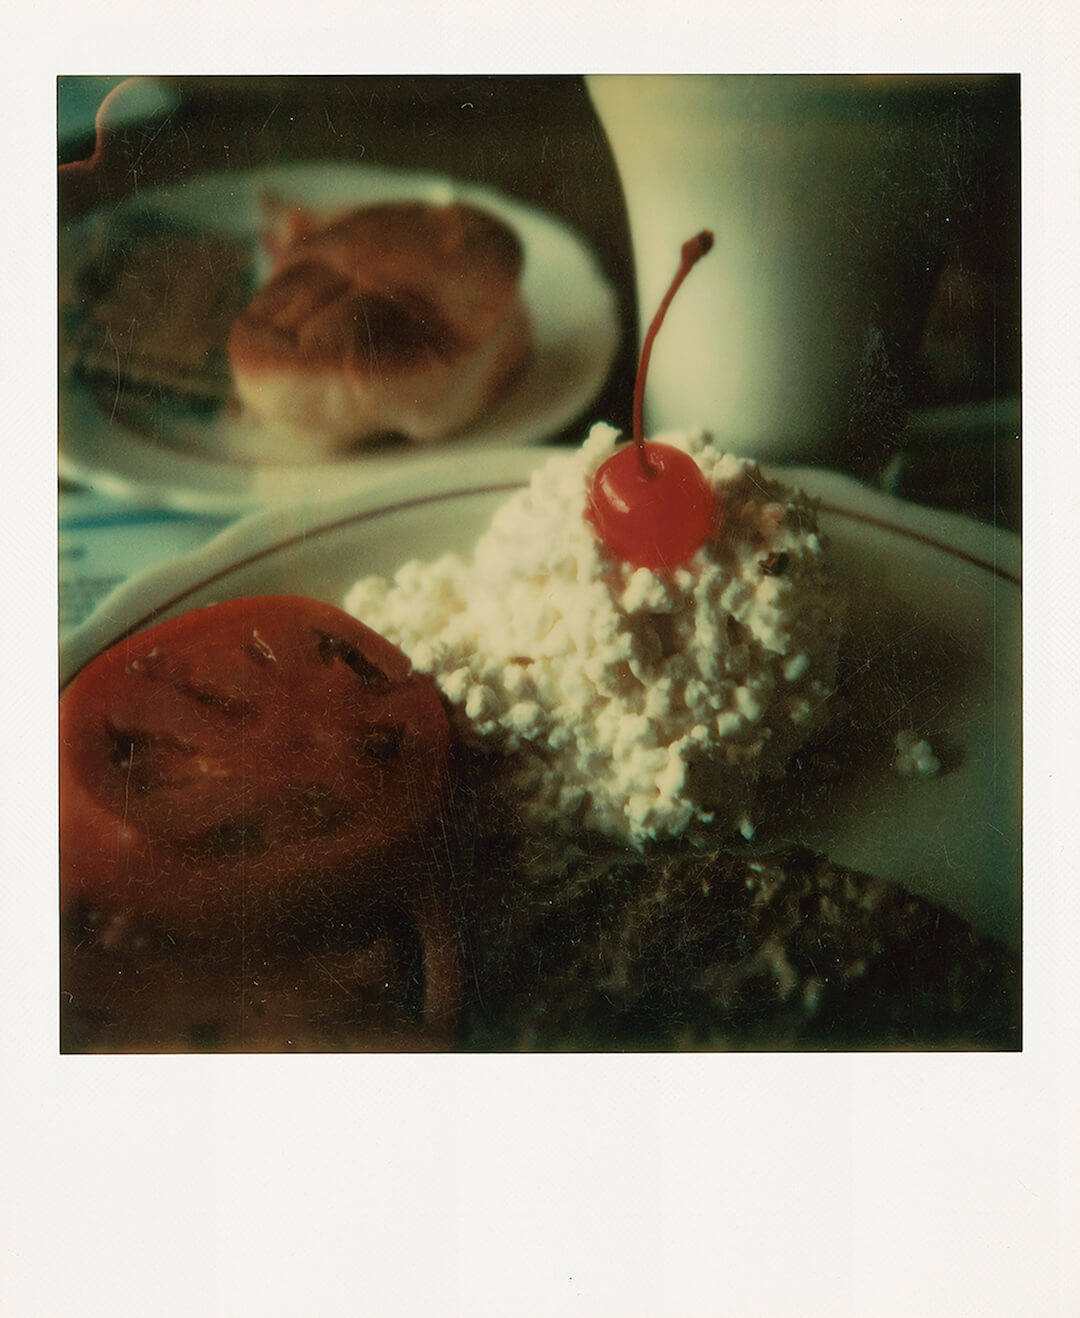 NY breakfast, 1973, Courtesy the artist and BlainSouthern, © Wim Wenders